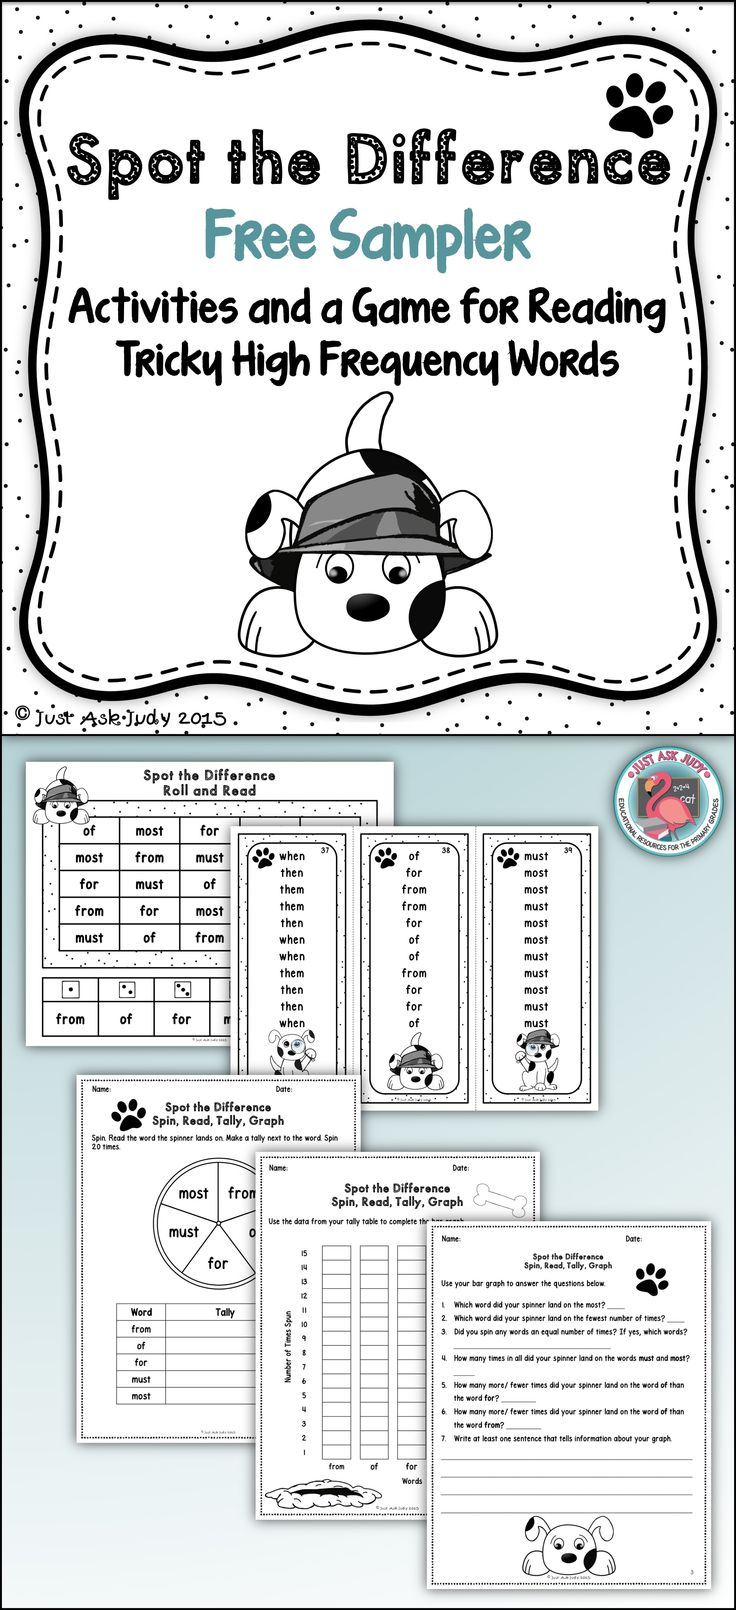 This FREE resource includes activities and a game to reinforce the accurate reading of high frequency words that are typically confused by young or struggling readers. Grades 1-3